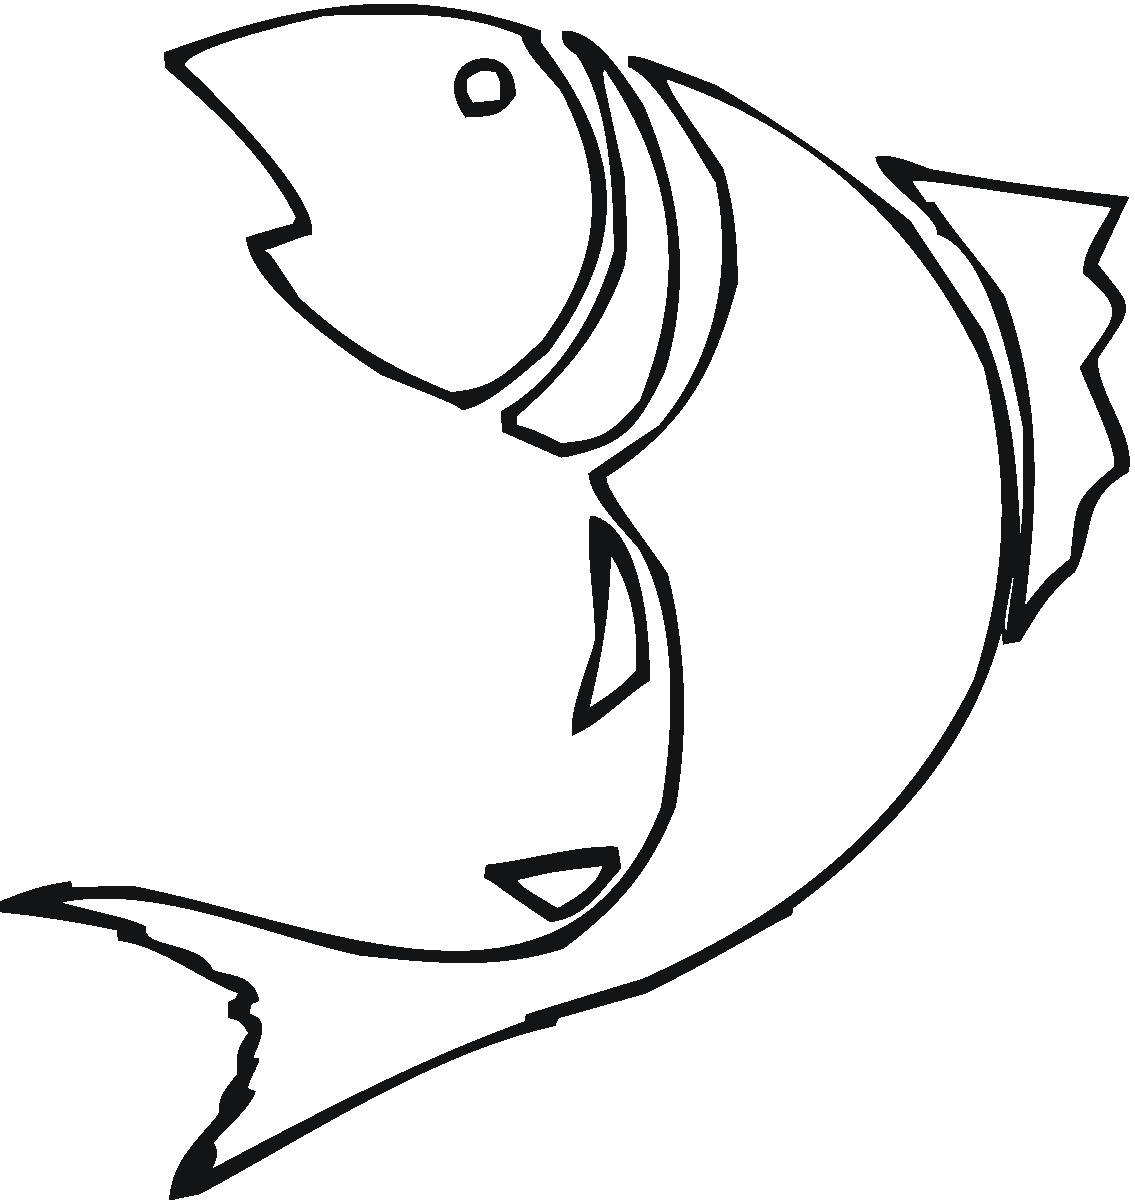 Fish Drawings Images.